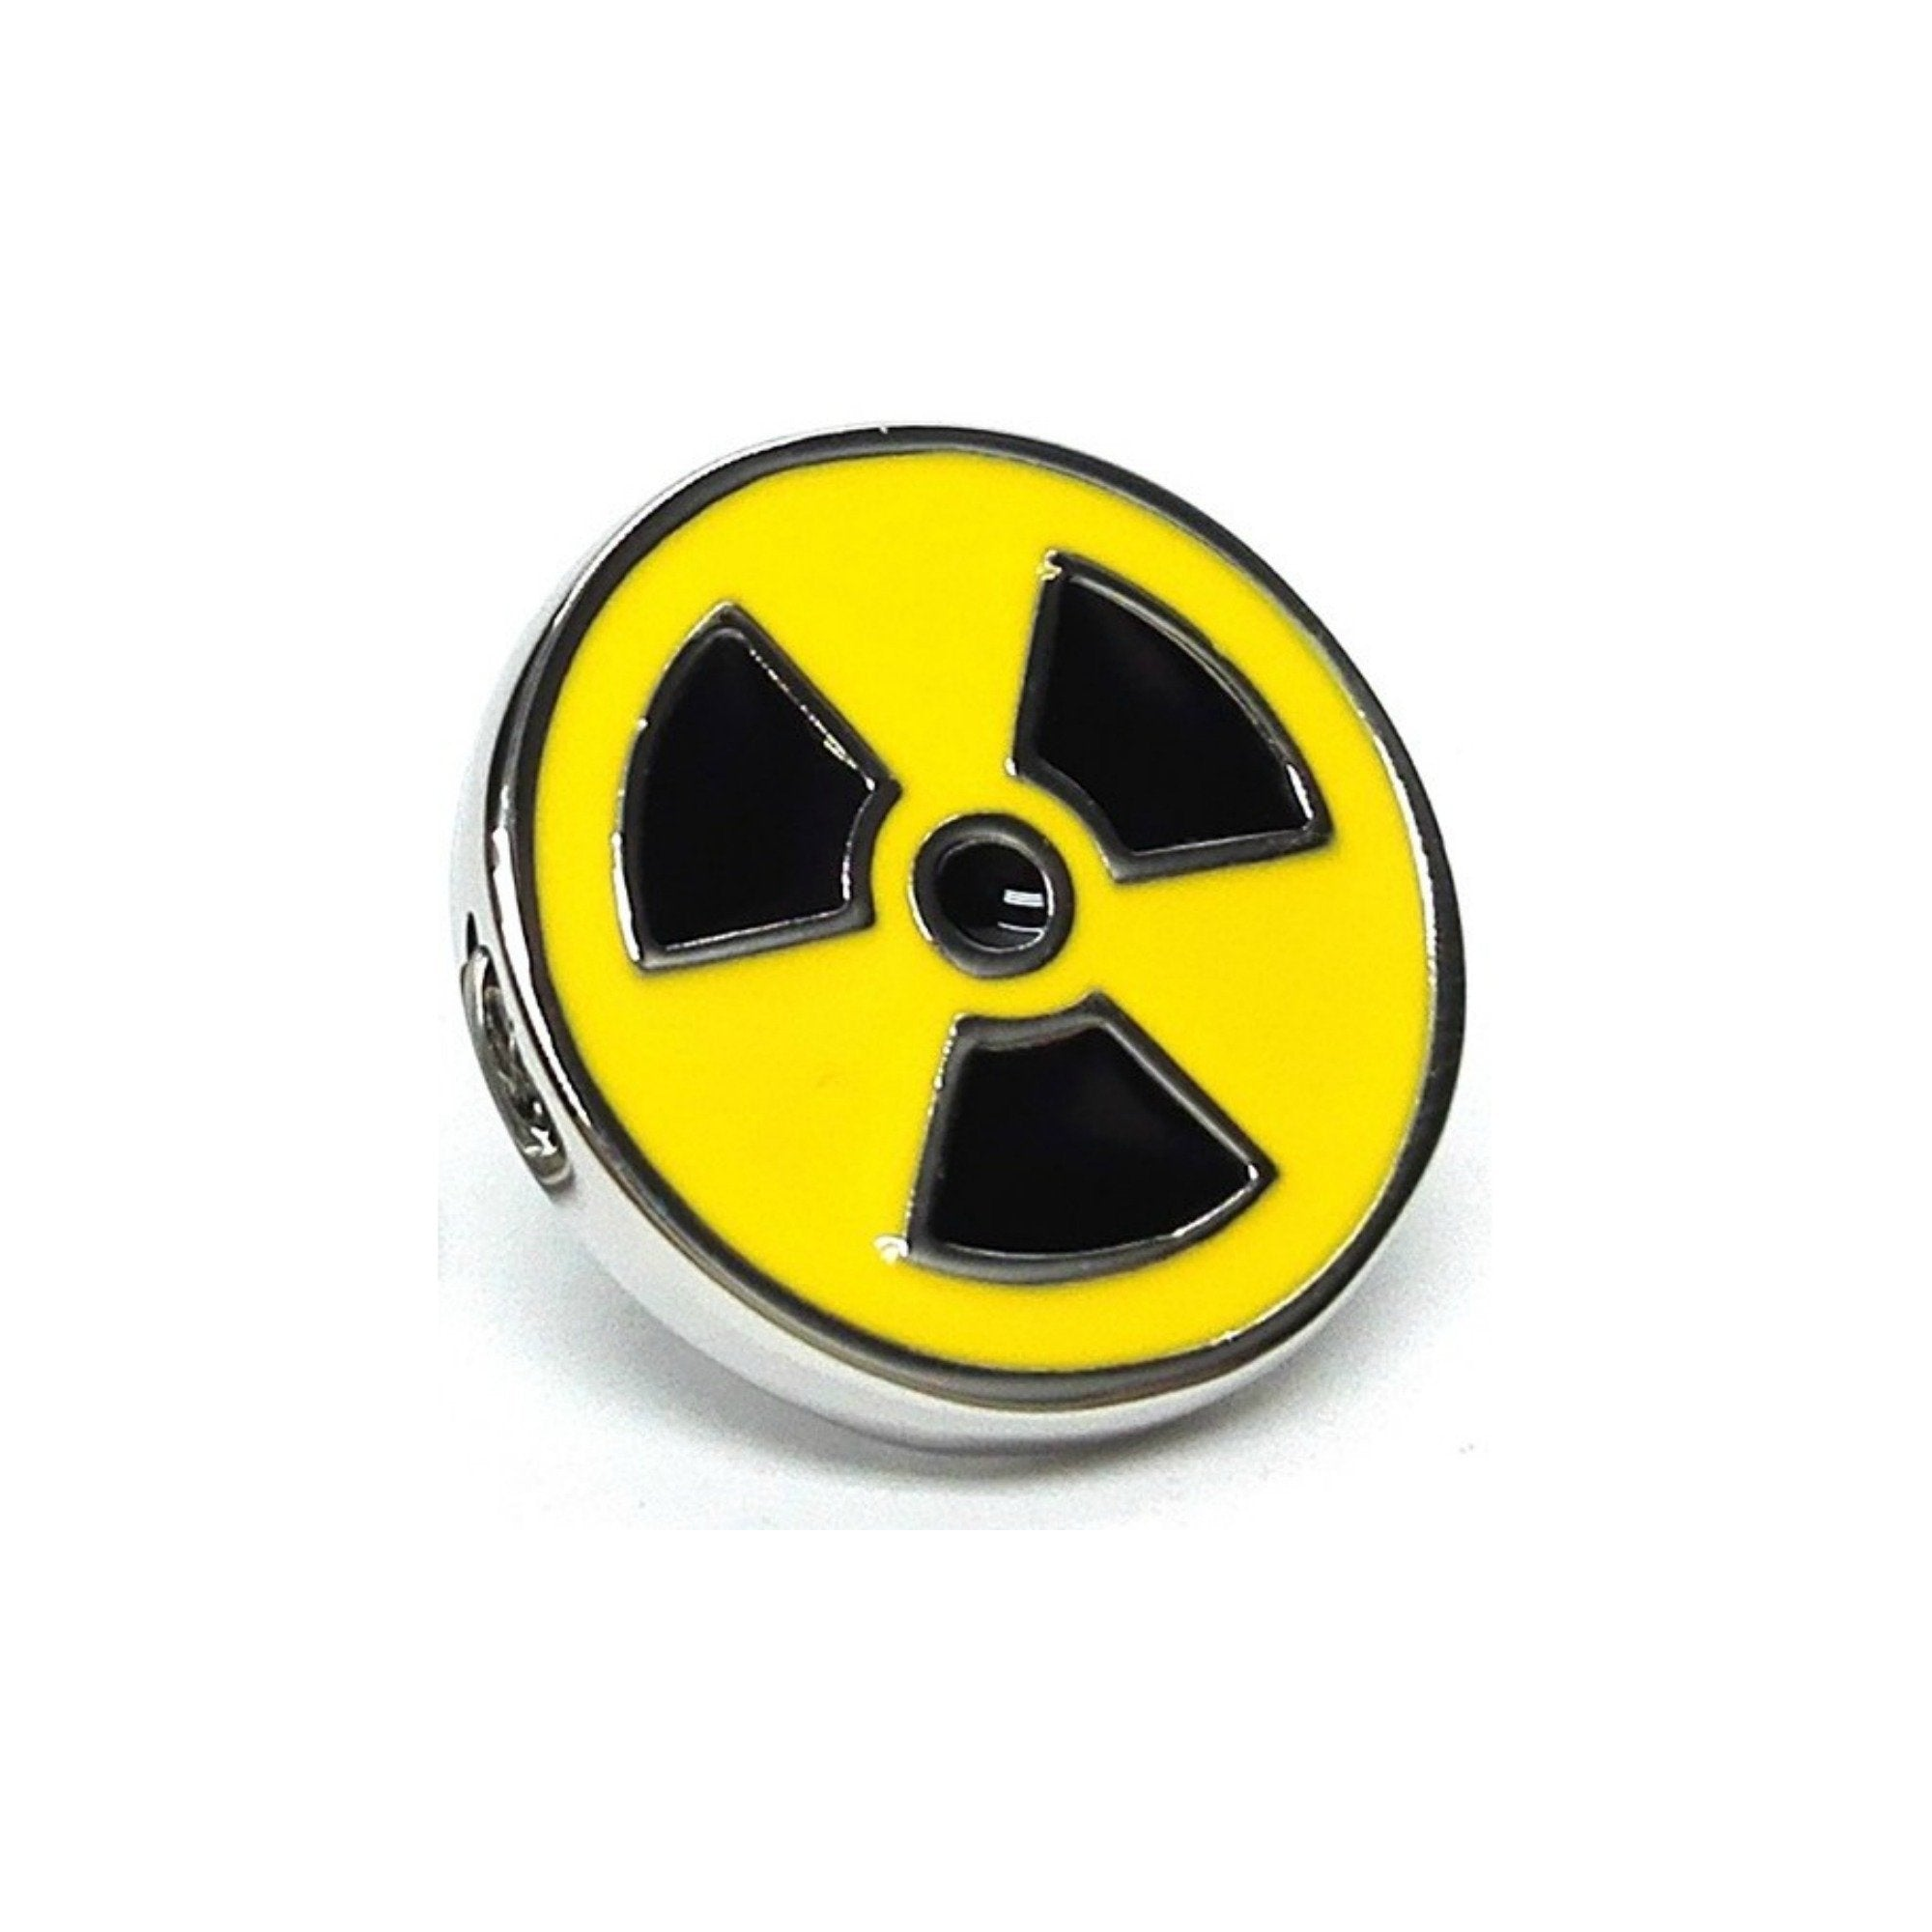 Radioactive Toxic Waste Enamel Lapel Pin Badge - Minimum Mouse